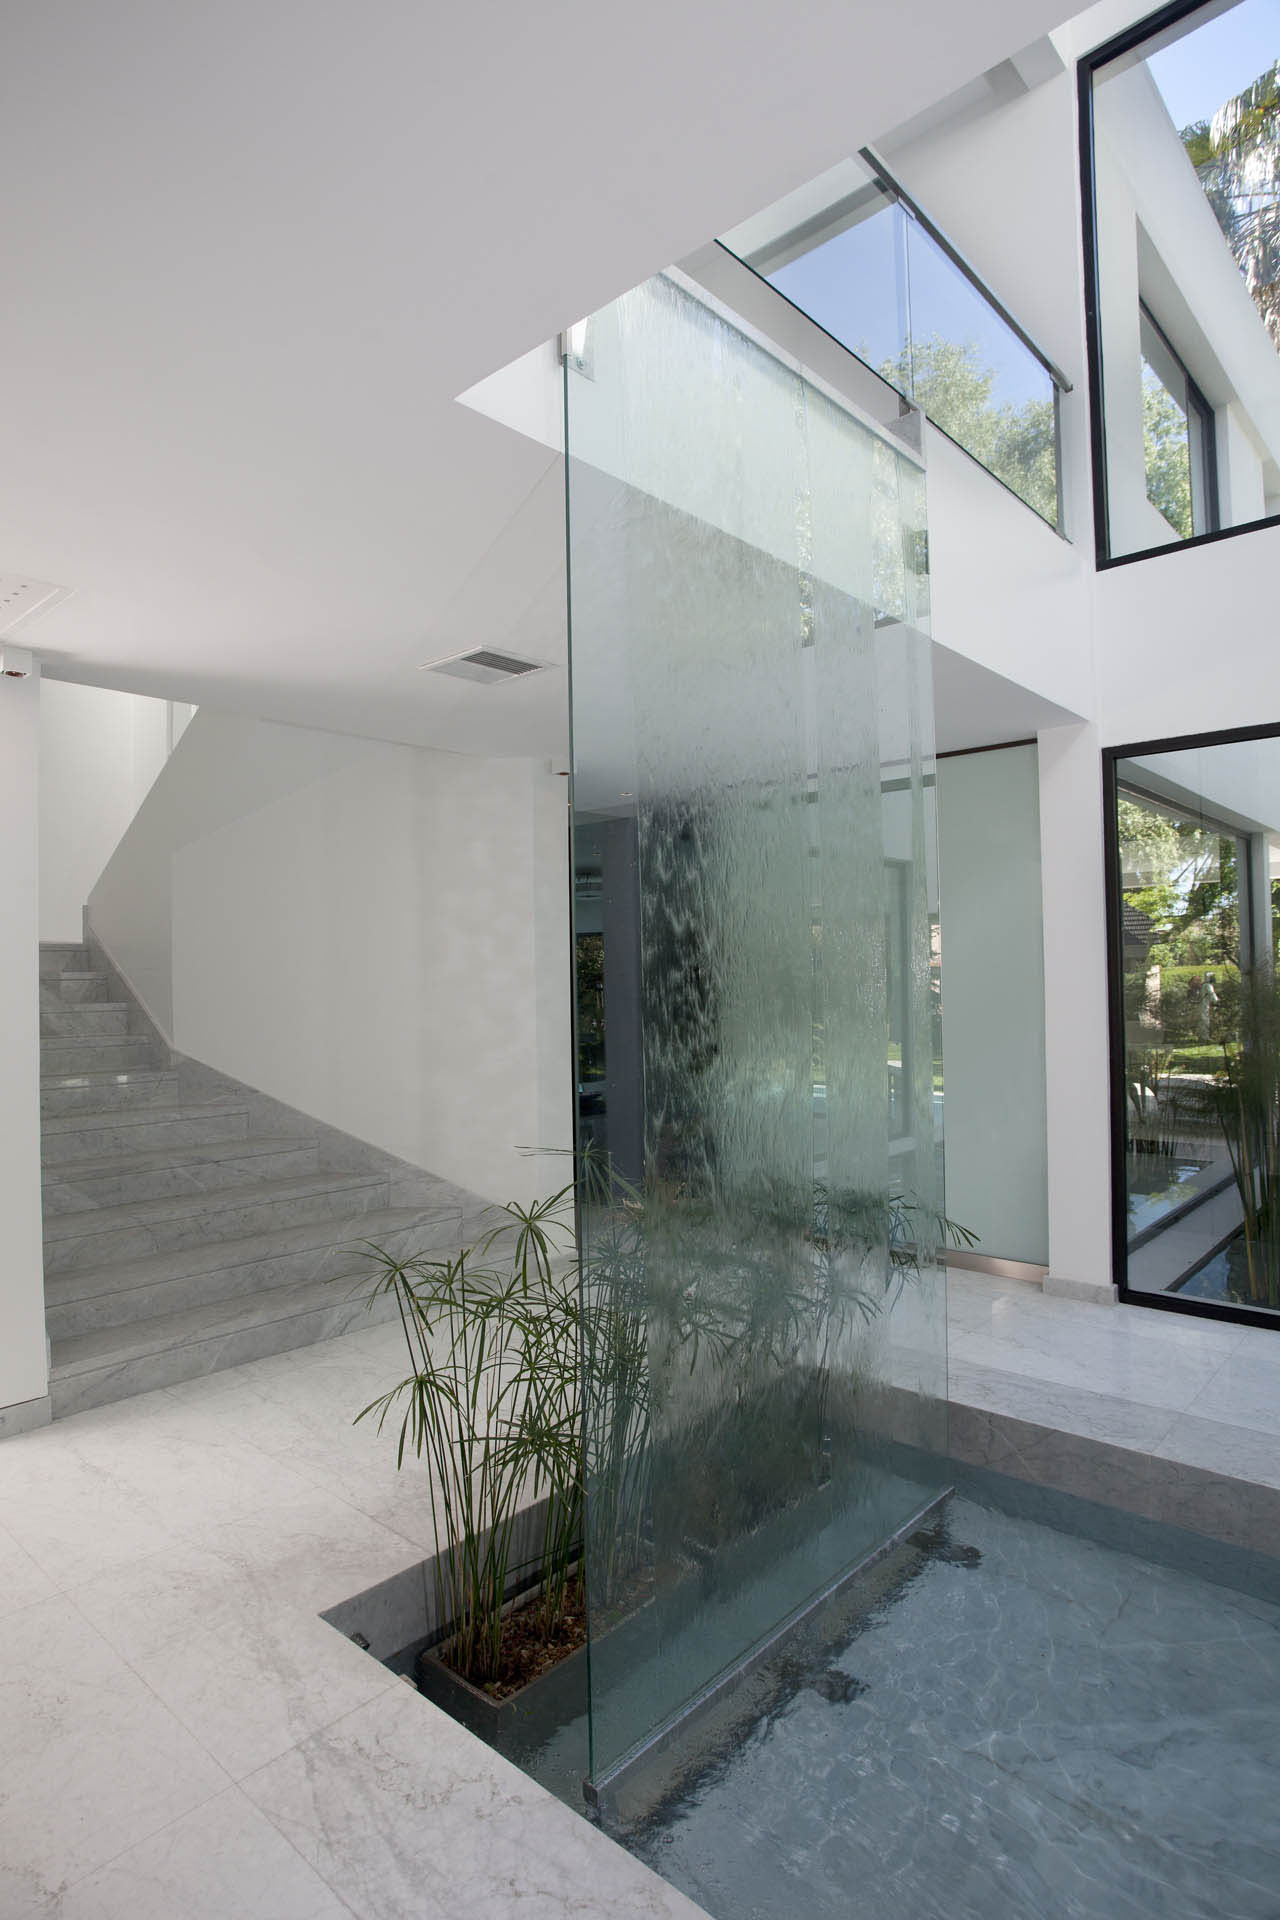 Architect: Andres Remy Arquitectos